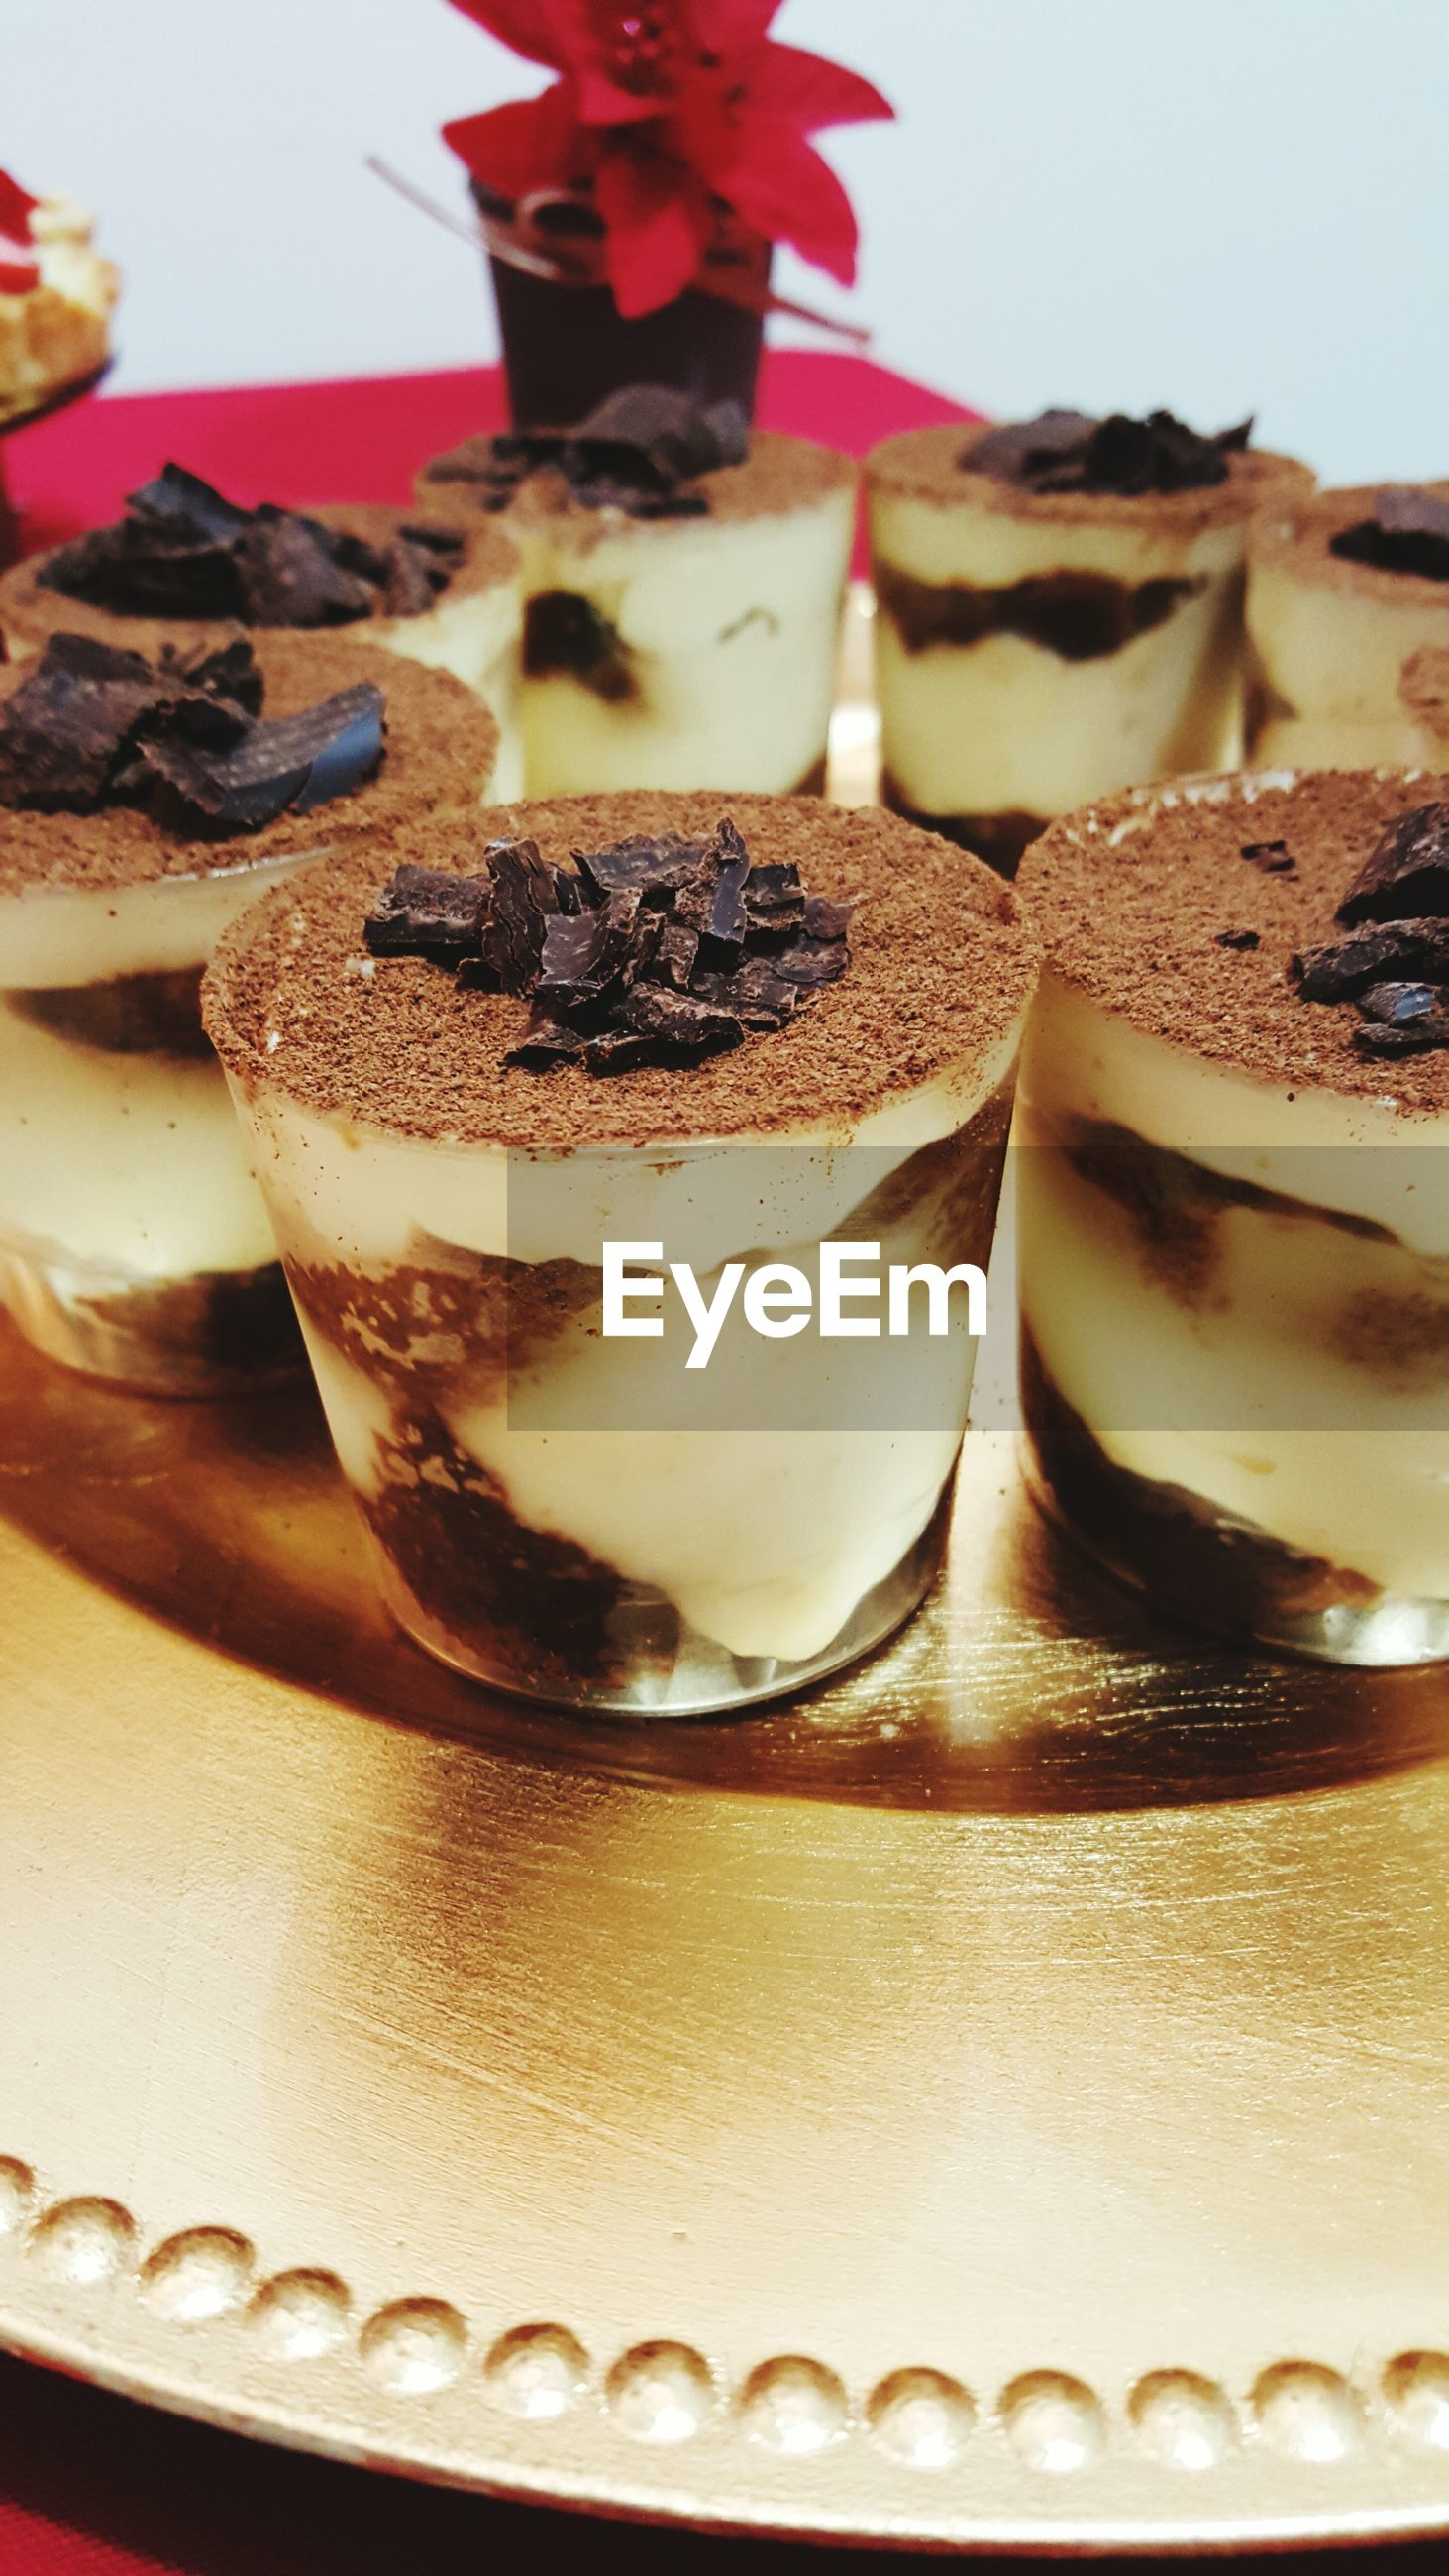 food and drink, indoors, sweet food, freshness, food, still life, close-up, dessert, indulgence, cake, unhealthy eating, ready-to-eat, chocolate, temptation, focus on foreground, table, large group of objects, cupcake, no people, abundance